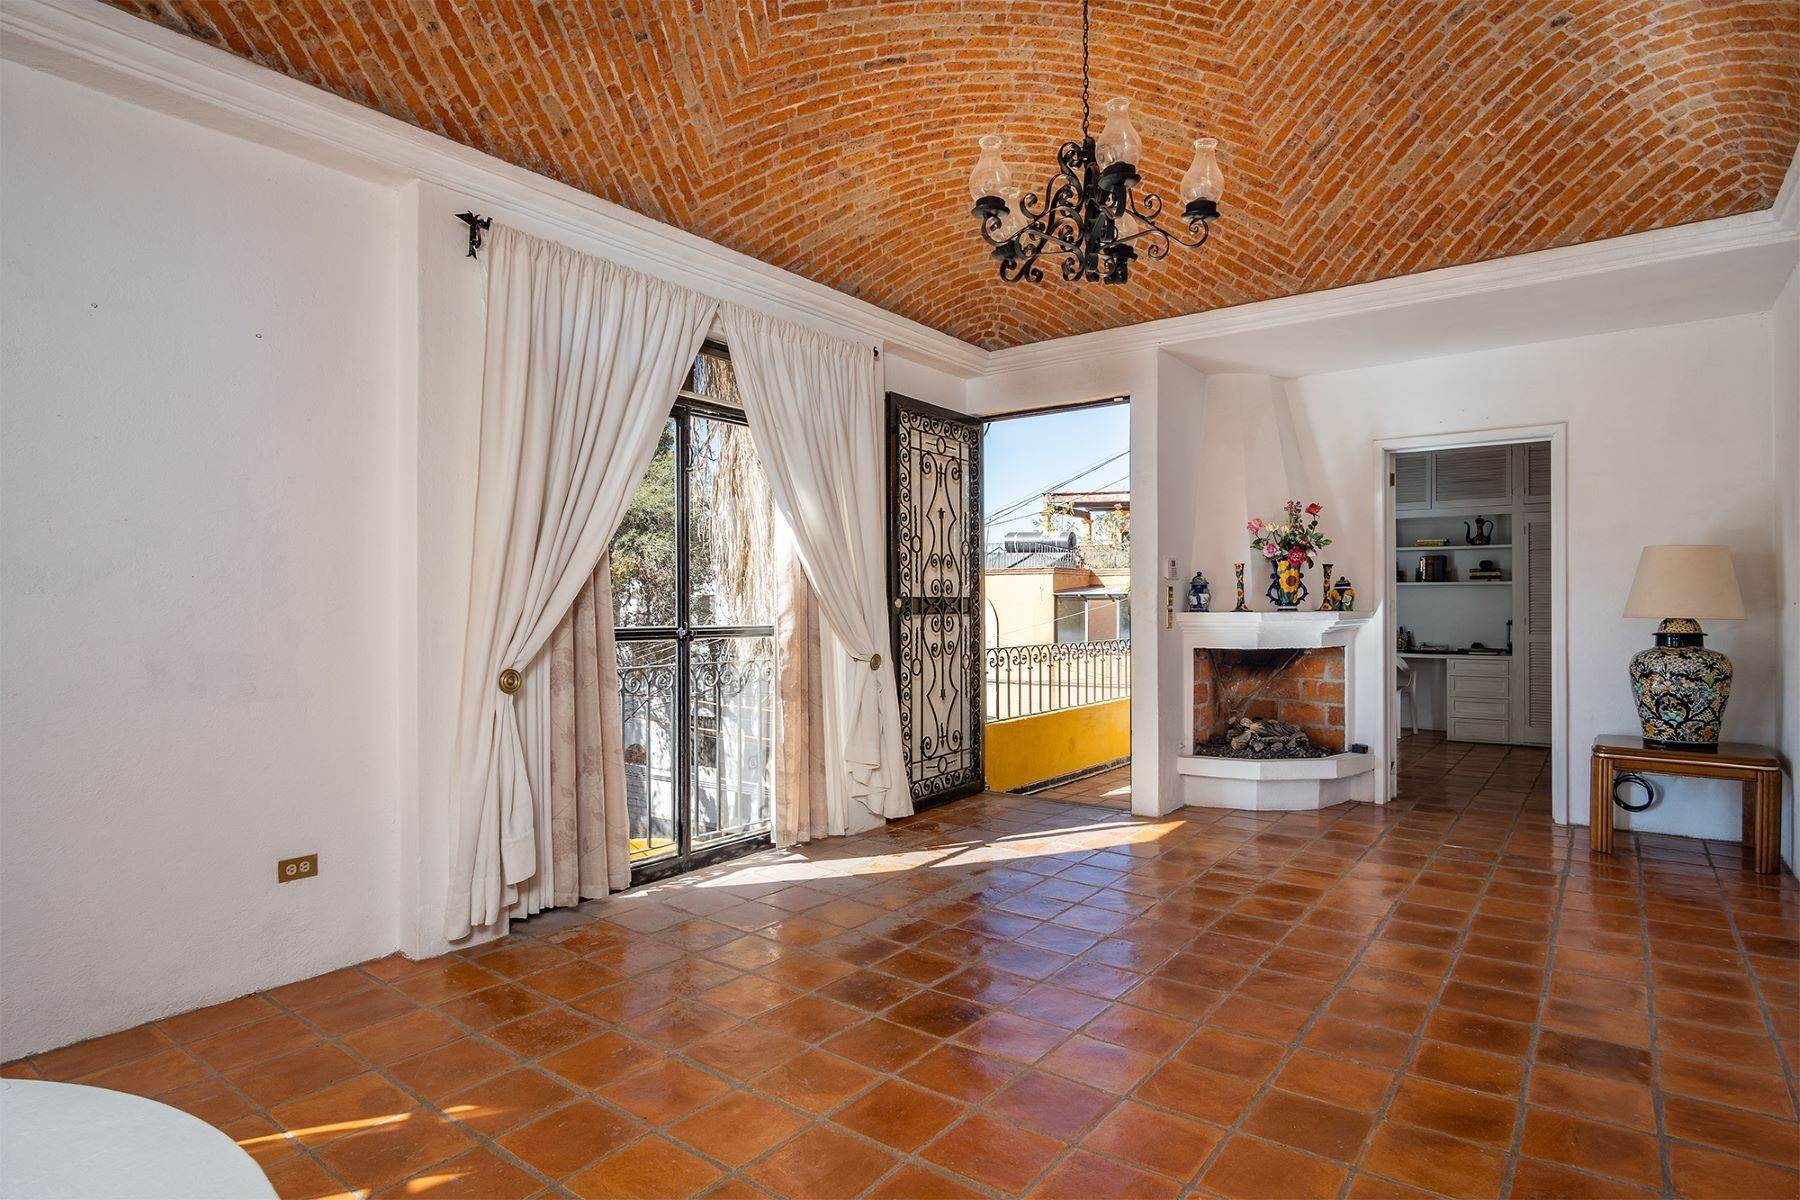 8. Single Family Homes for Sale at Pila Seca 2B, Centro Histórico San Miguel De Allende, Guanajuato 37700 Mexico